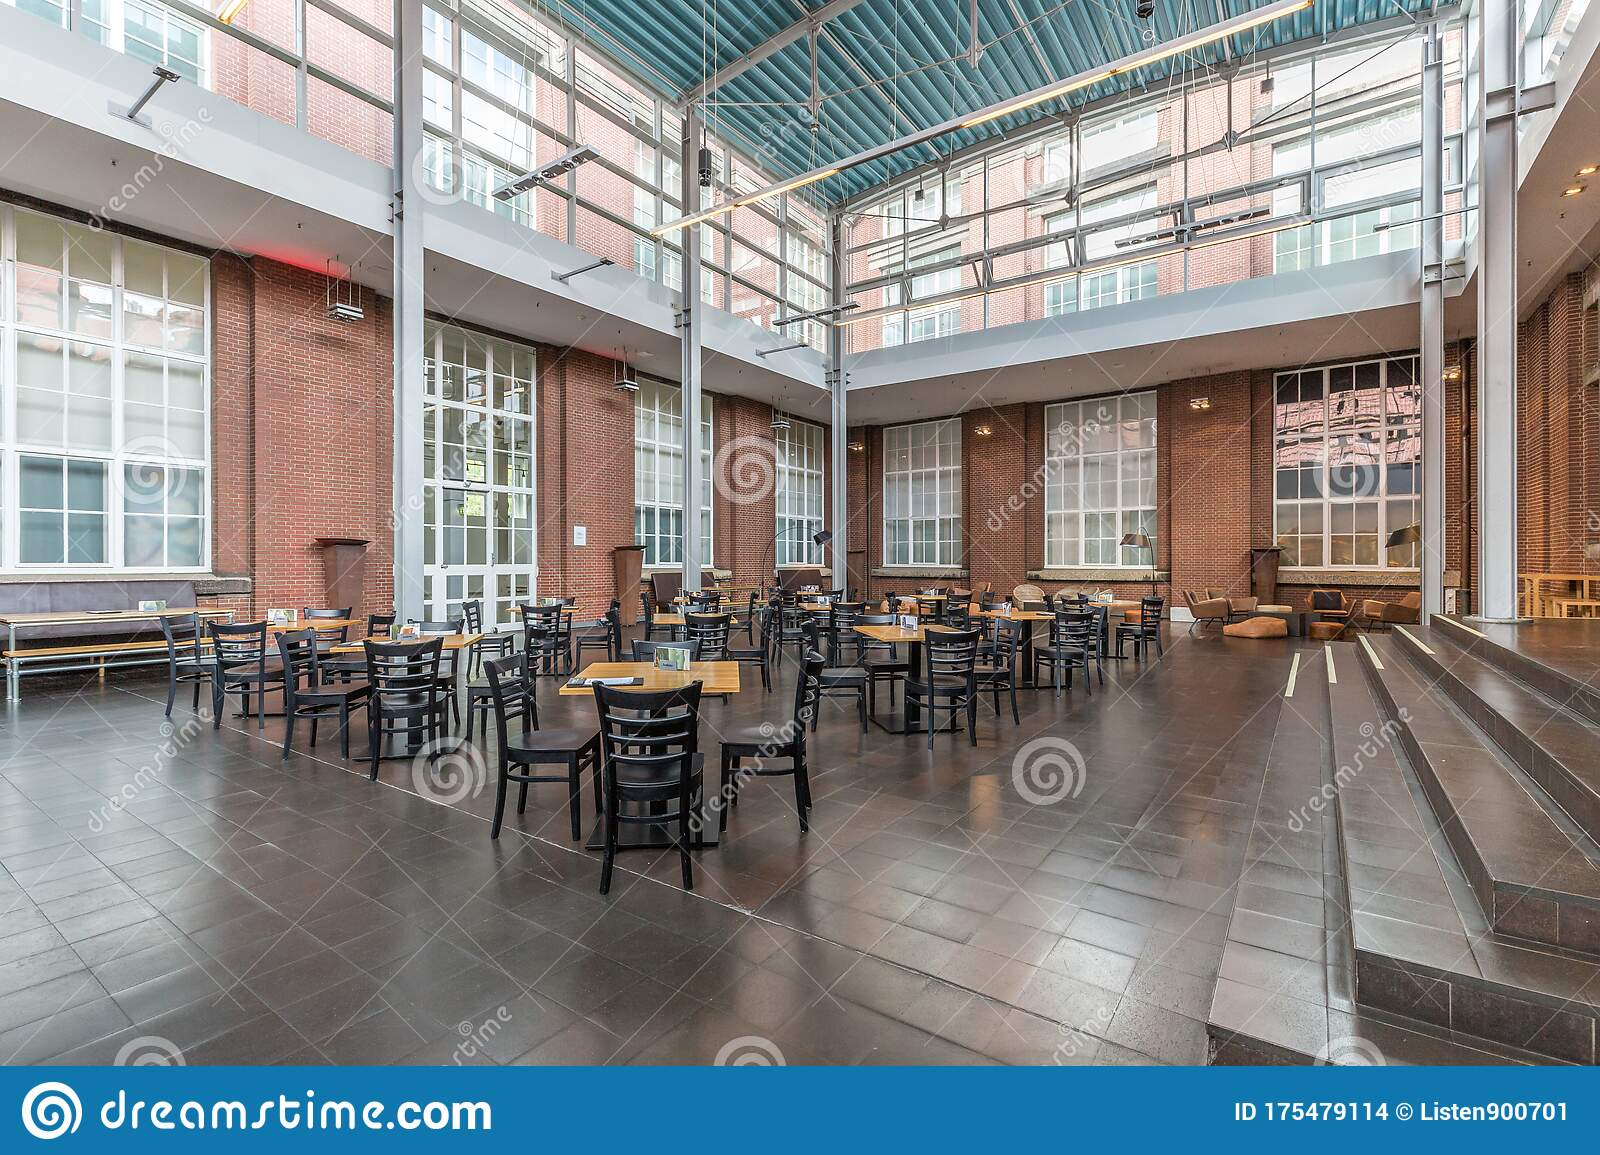 11 625 Industrial Restaurant Photos Free Royalty Free Stock Photos From Dreamstime